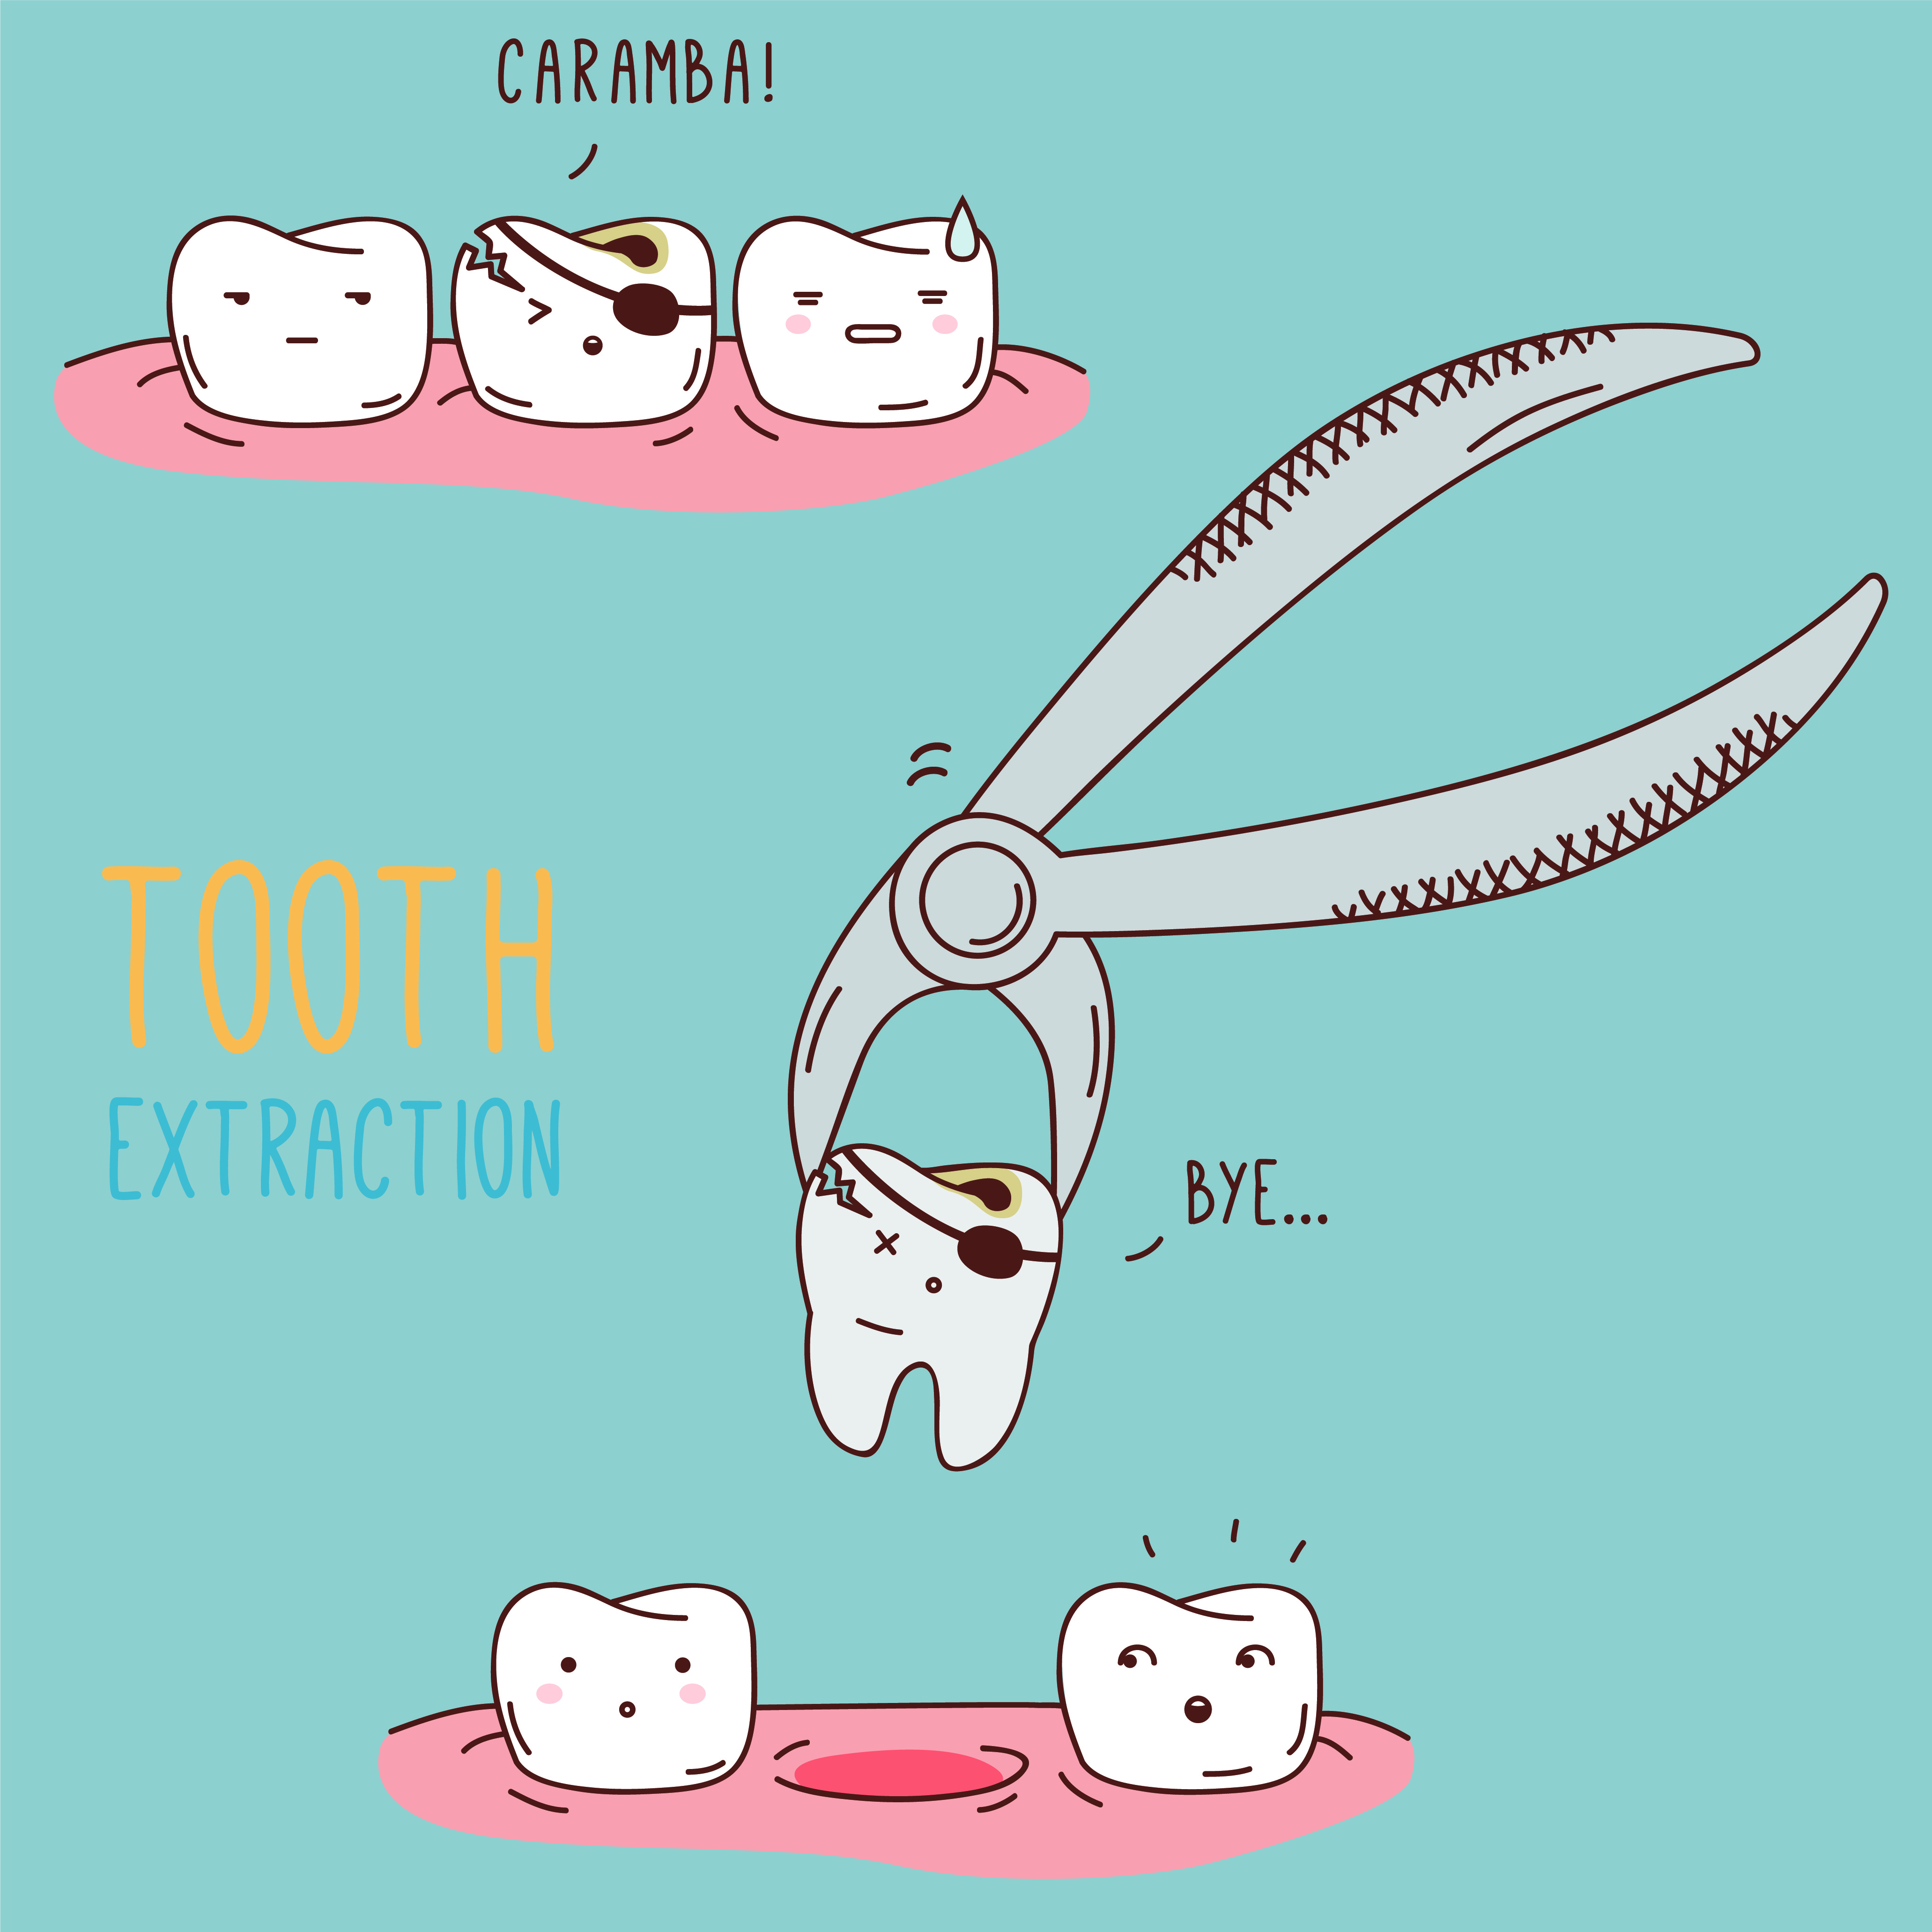 Tooth Extraction graphic from Dailley Dental Care